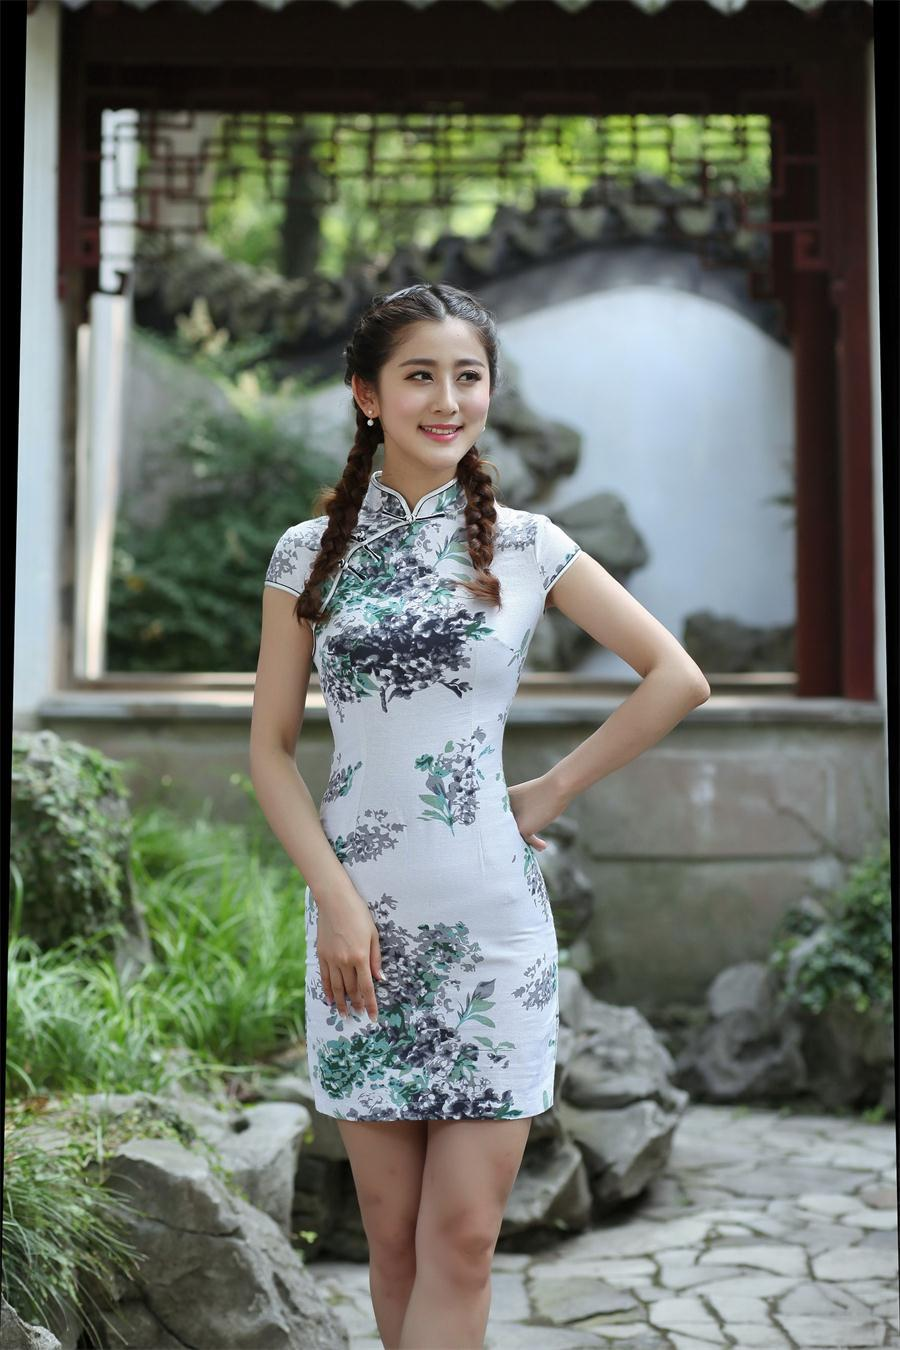 sale asian personals A dating site for american men & asian women.